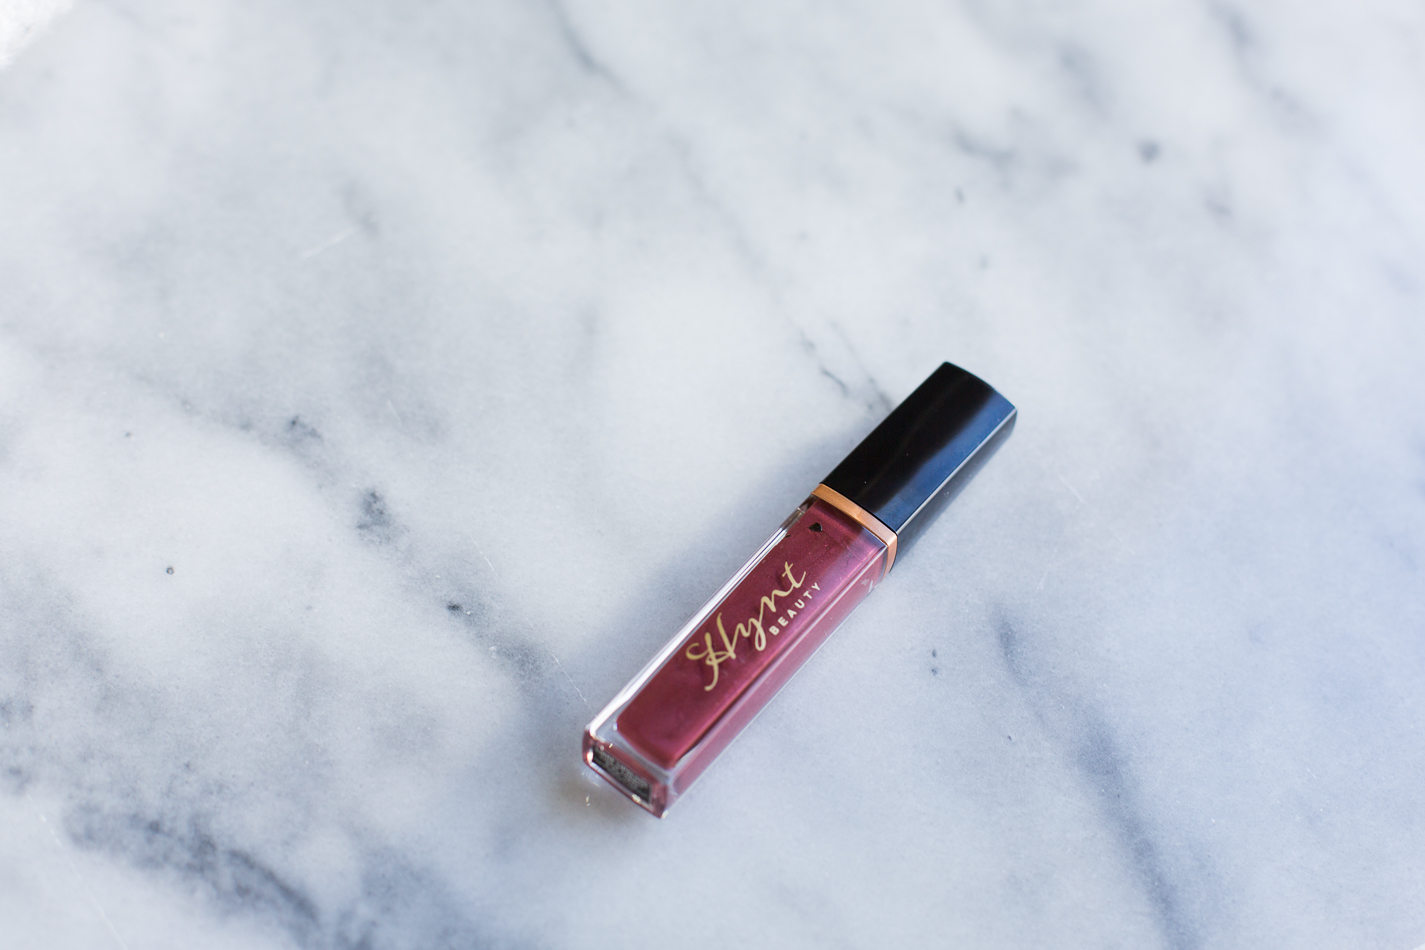 Hynt Beauty Lip Gloss in color Liquid Garnet